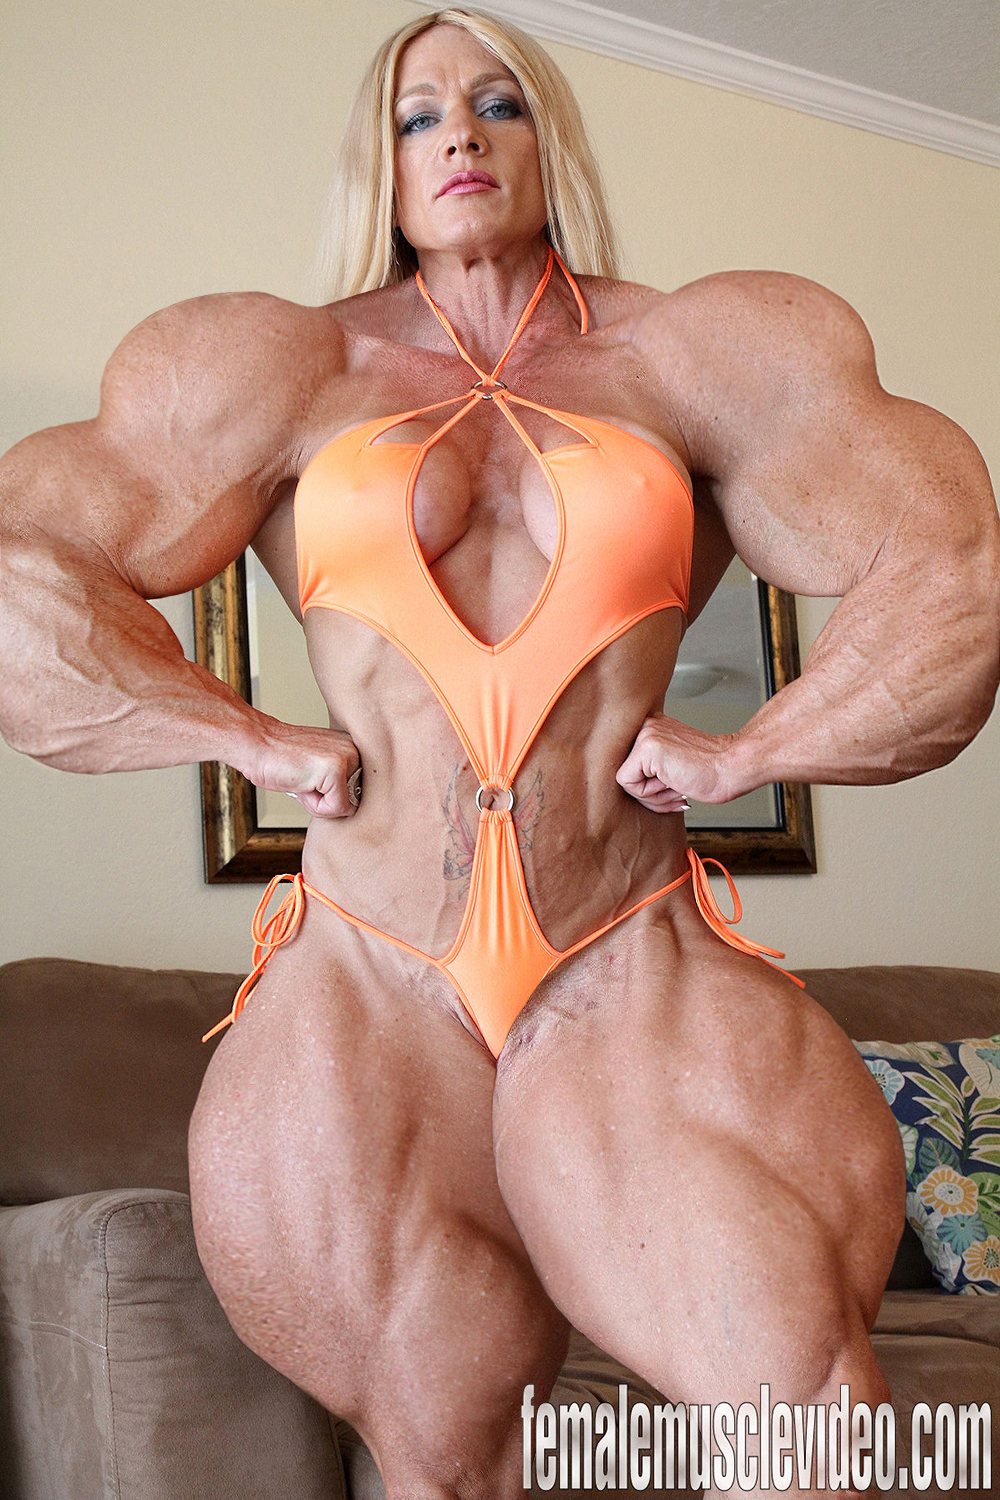 Muscle nude girls hentai image